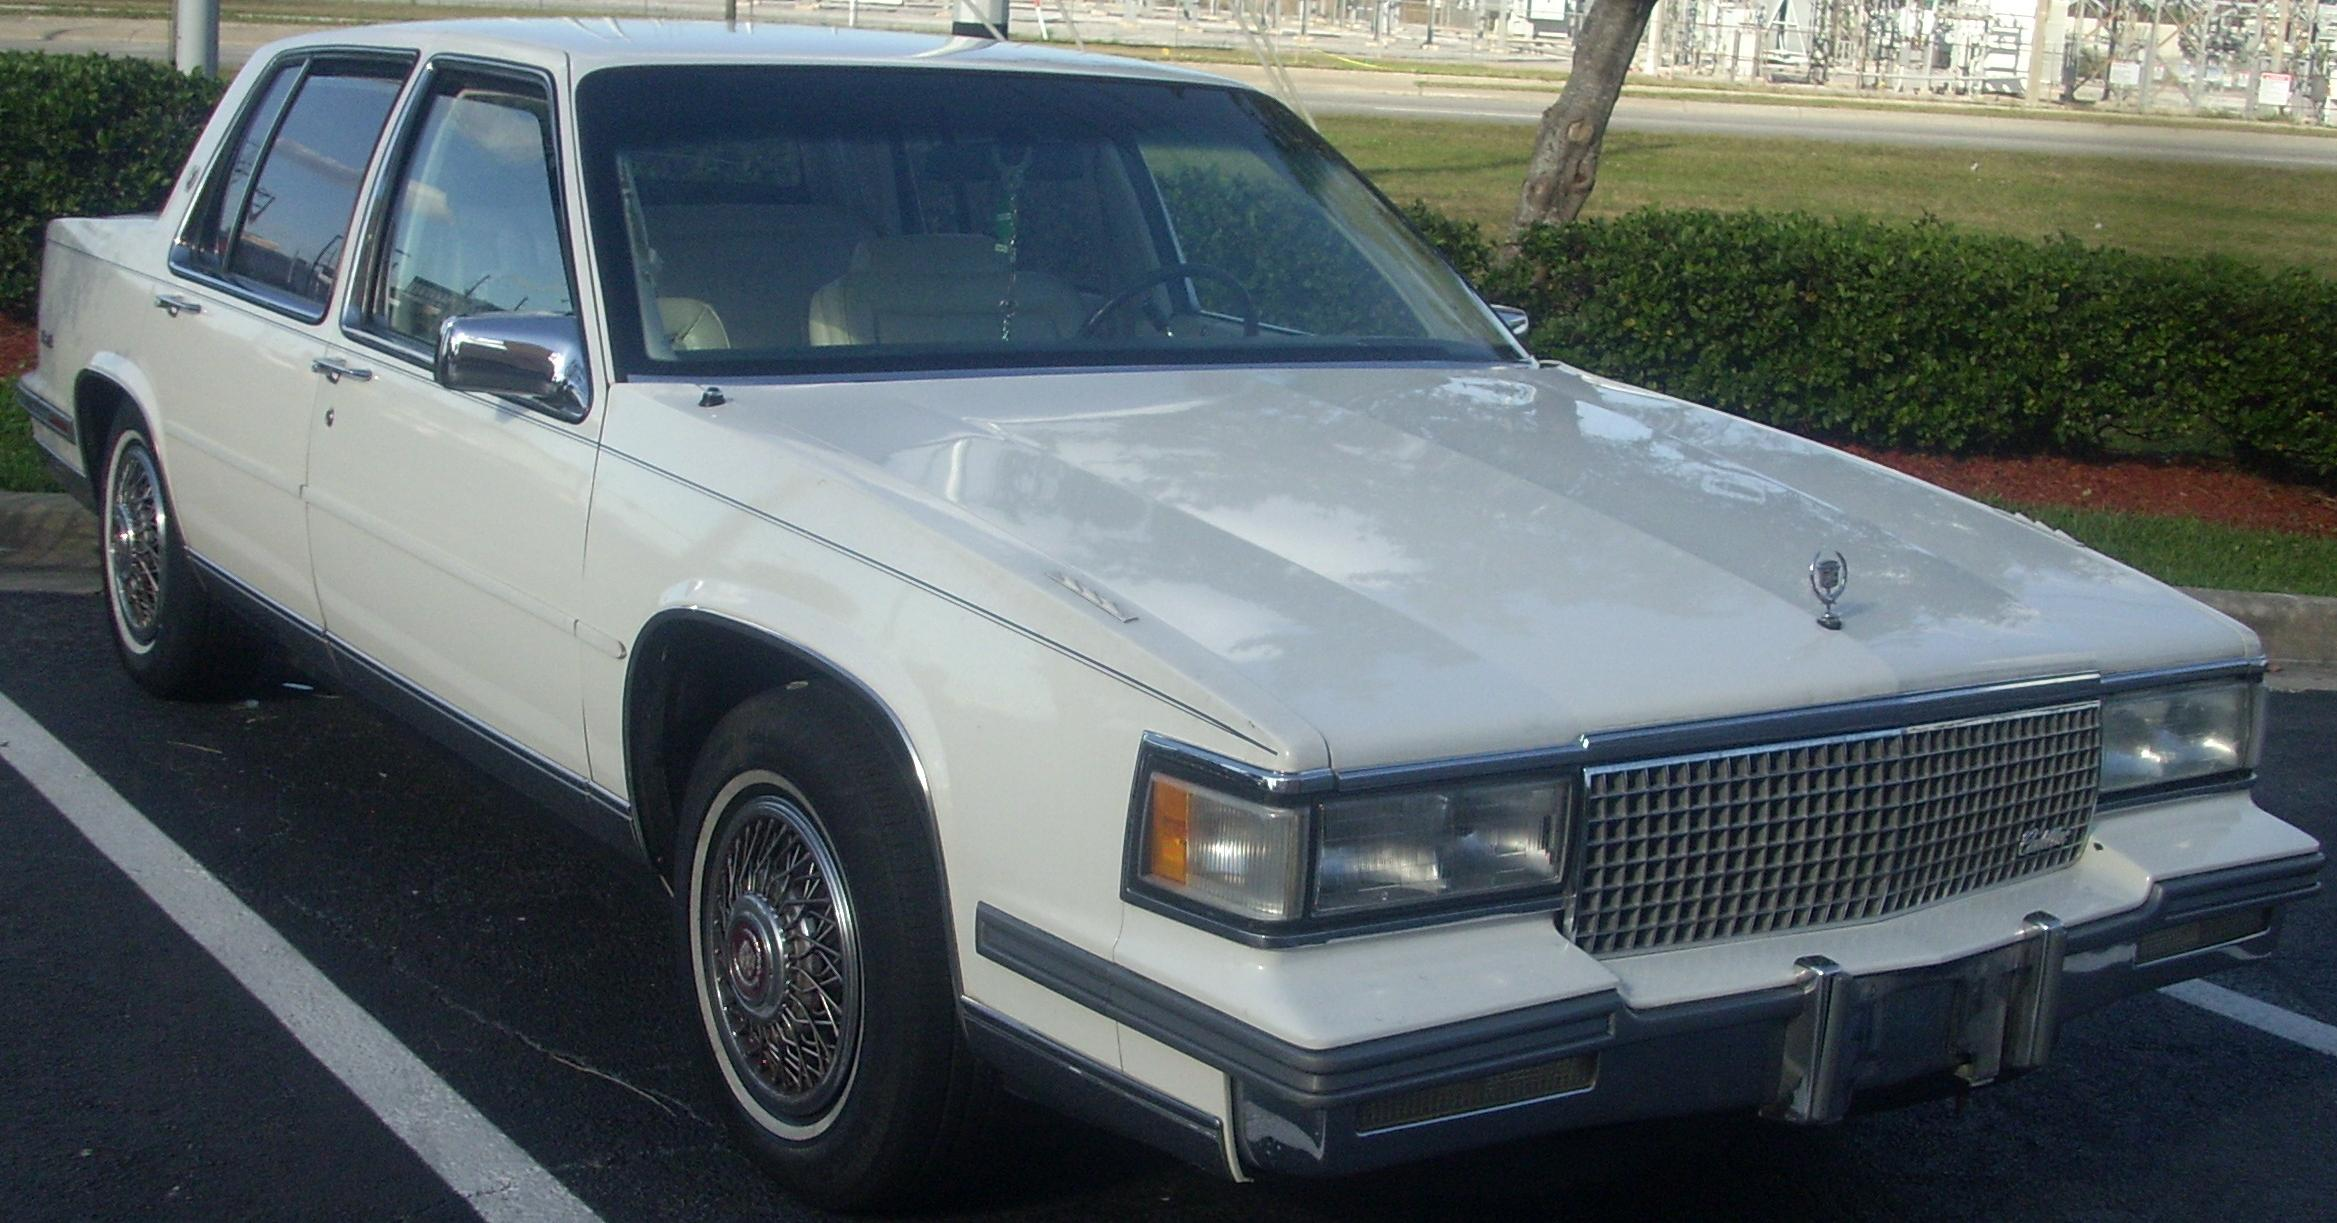 Cadillac Seville Engine Diagram Get Free Image About Wiring Diagram